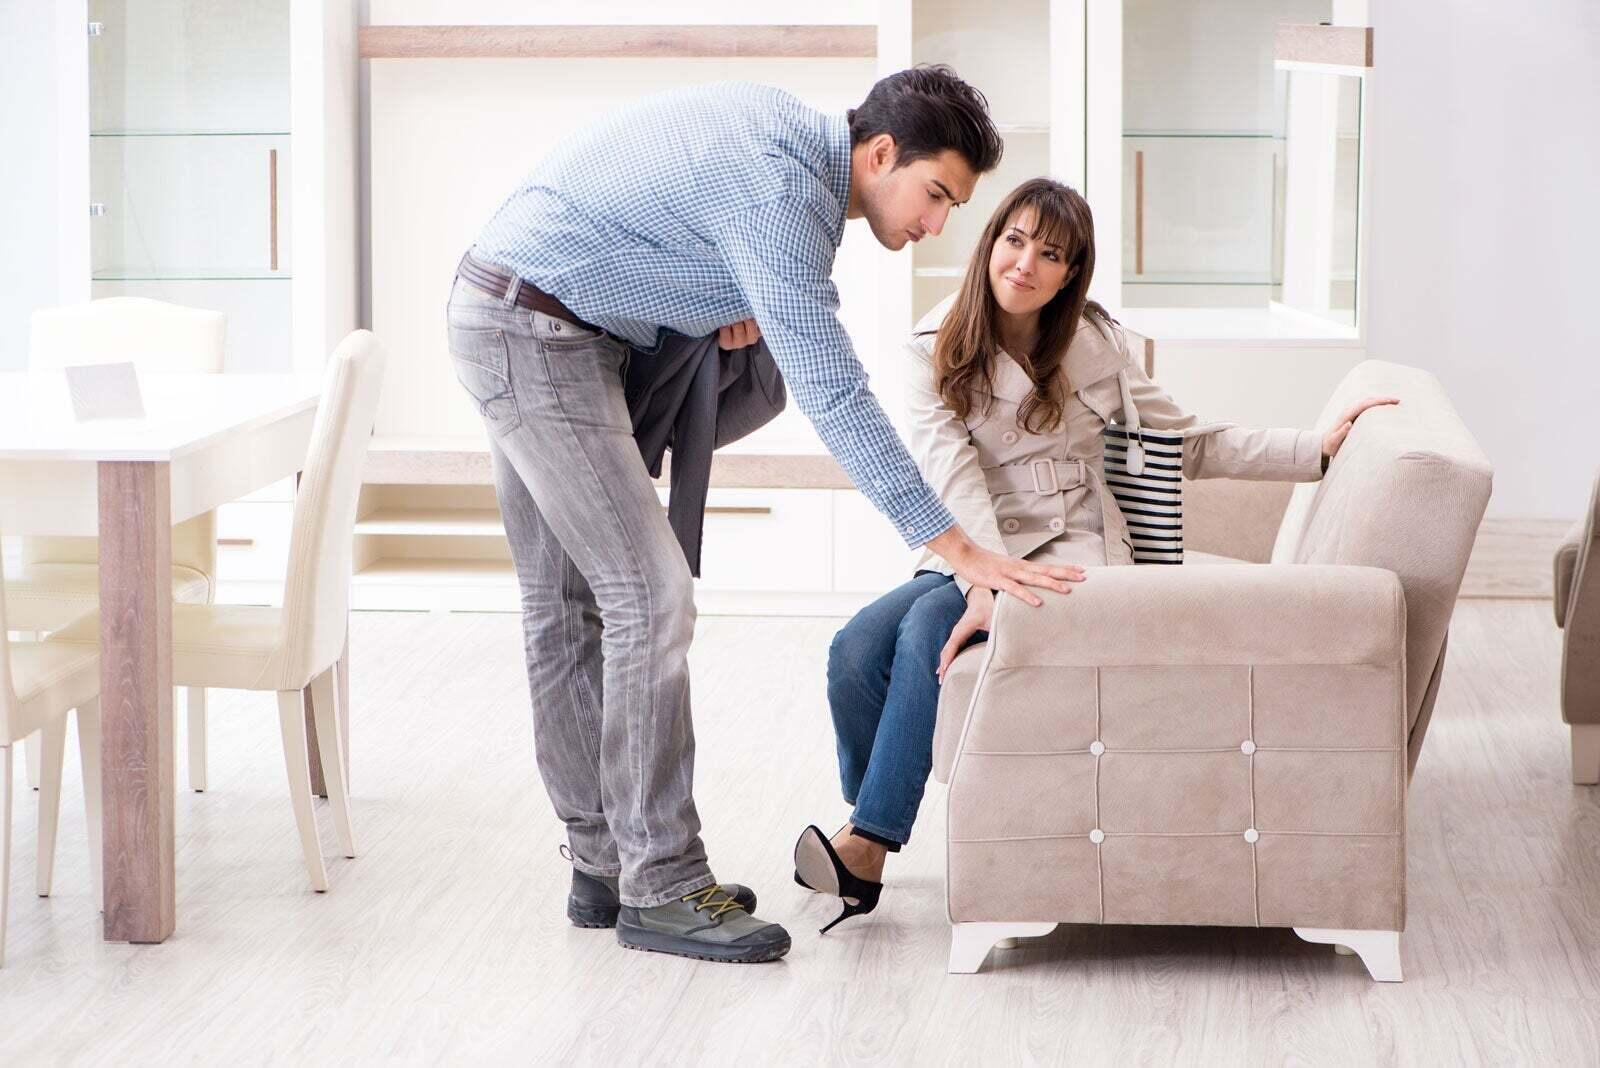 A man and a woman in a store looking at a sofa.